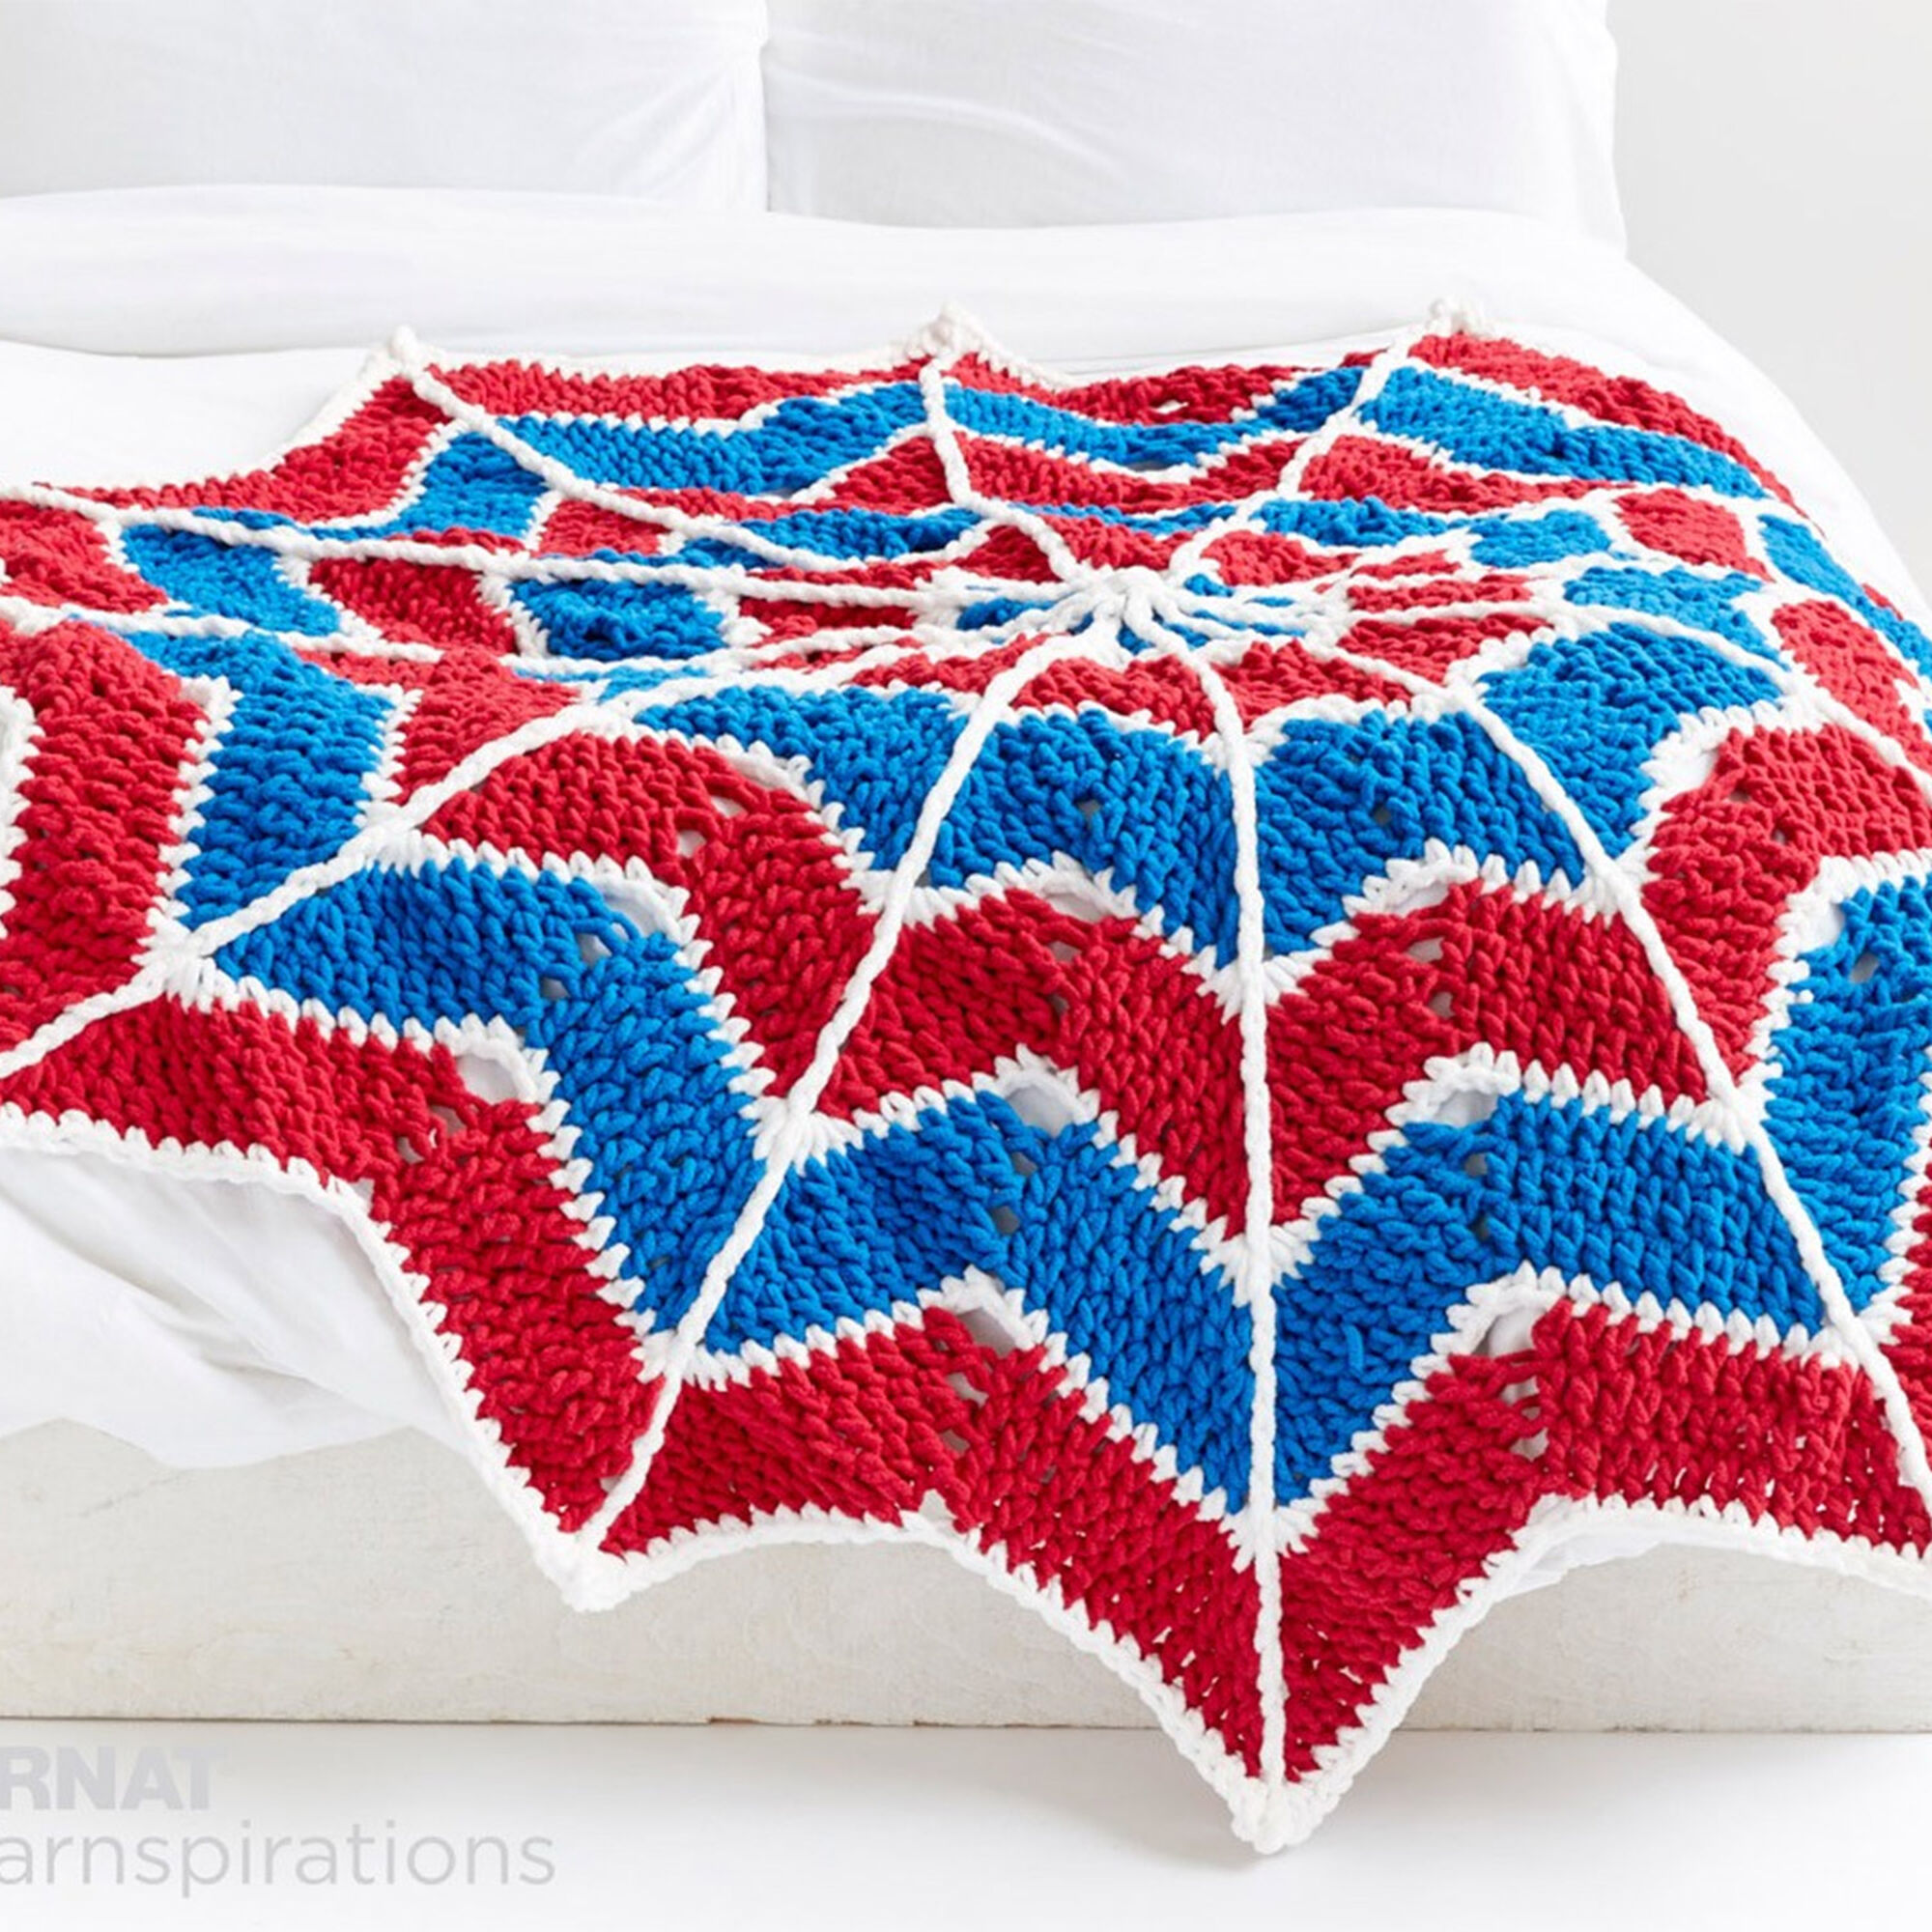 Bernat Spiderweb Crochet Blanket | Yarnspirations